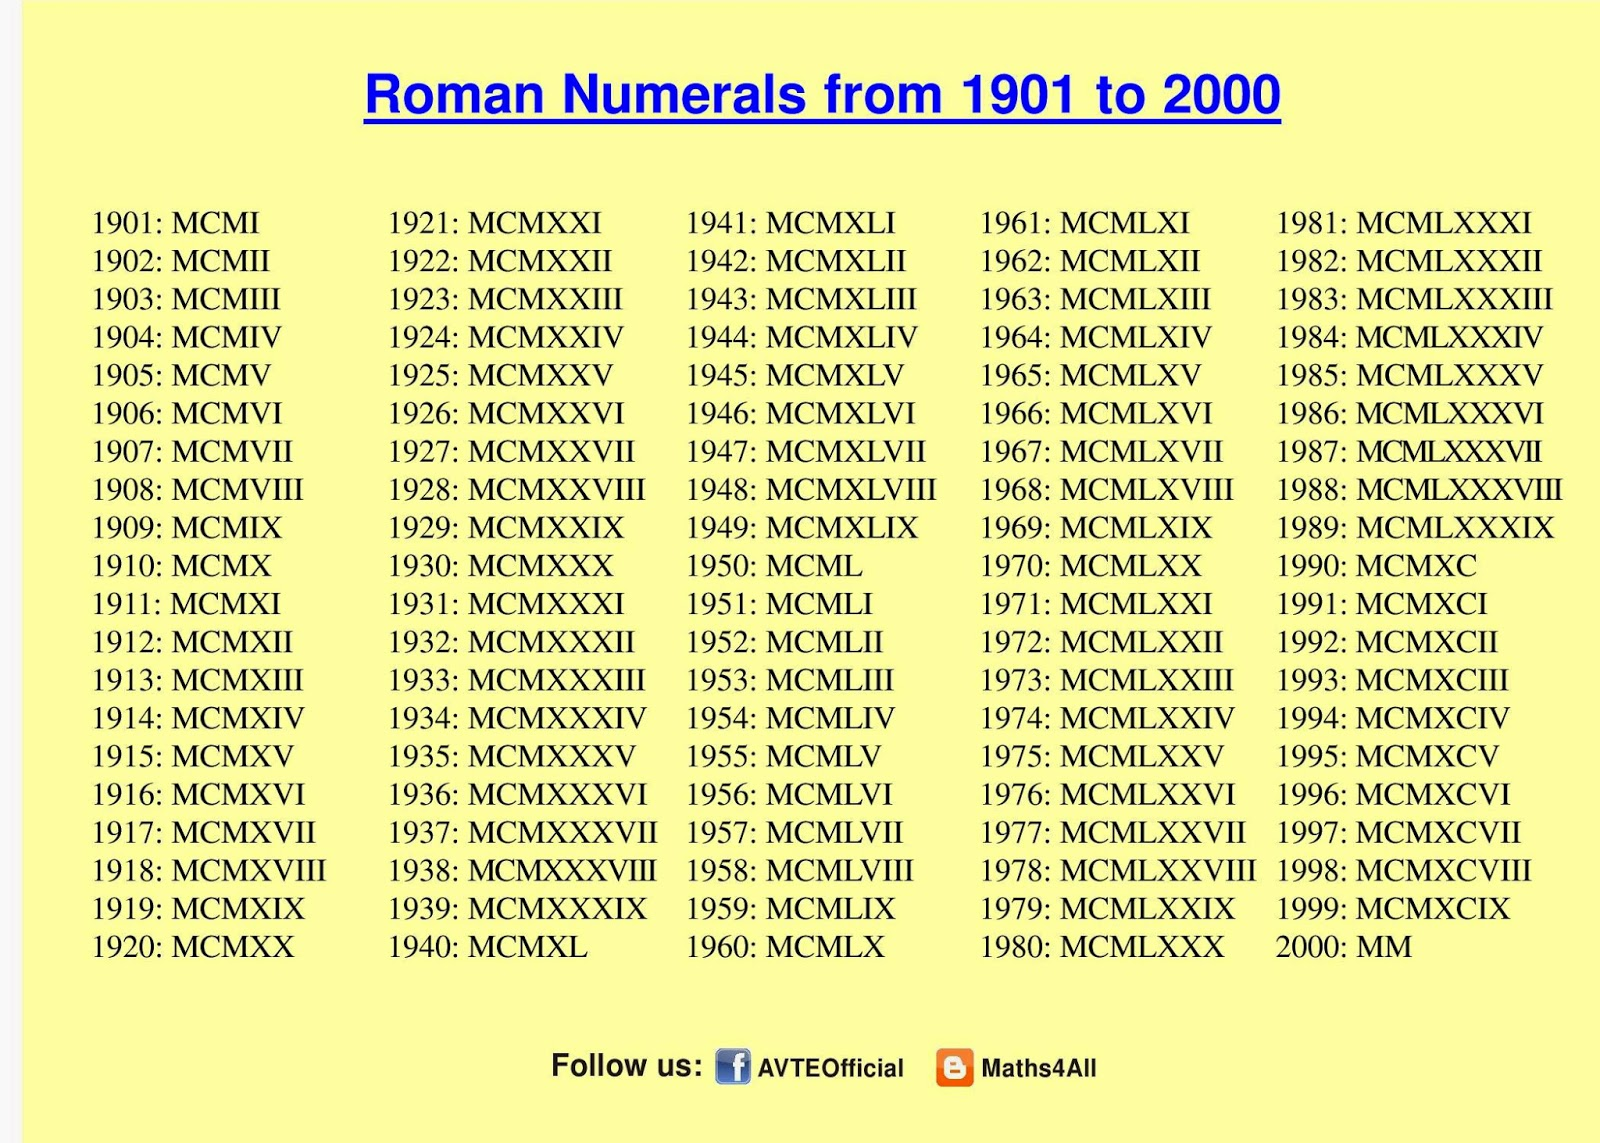 how to write roman numerals in word 2016